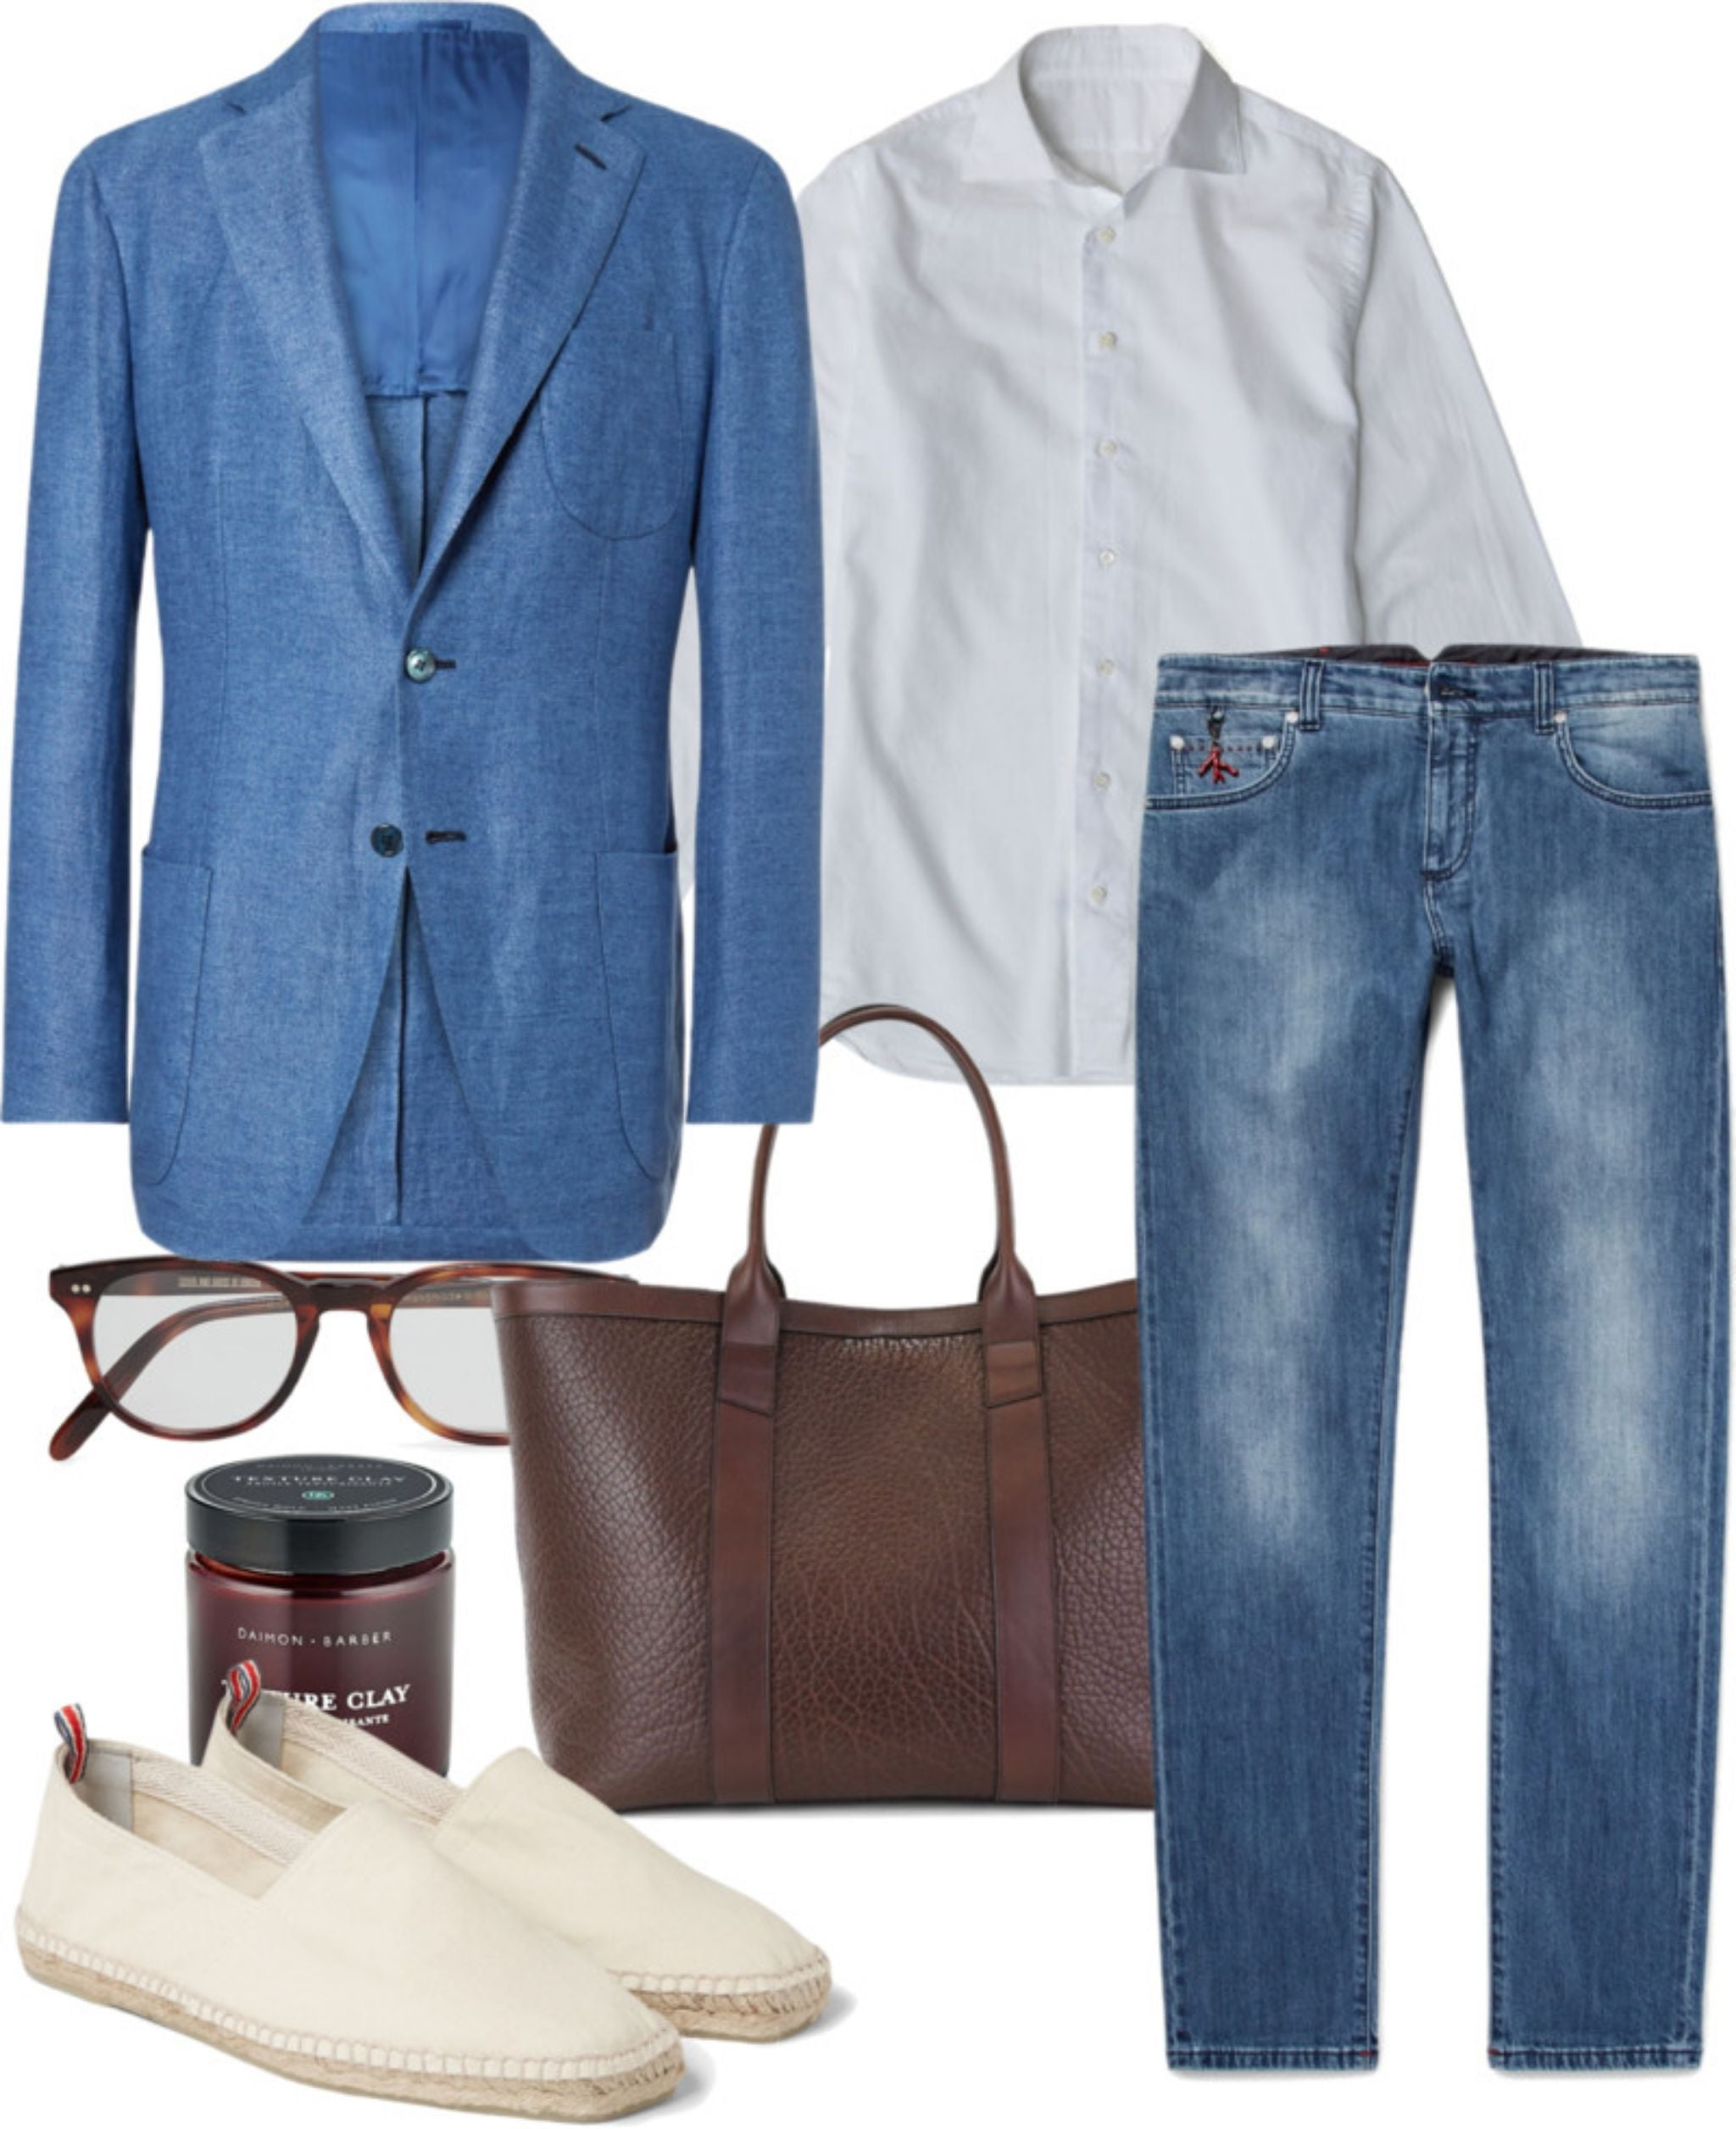 Light-blue-sport-coat-with-jeans-and-espadrillas.